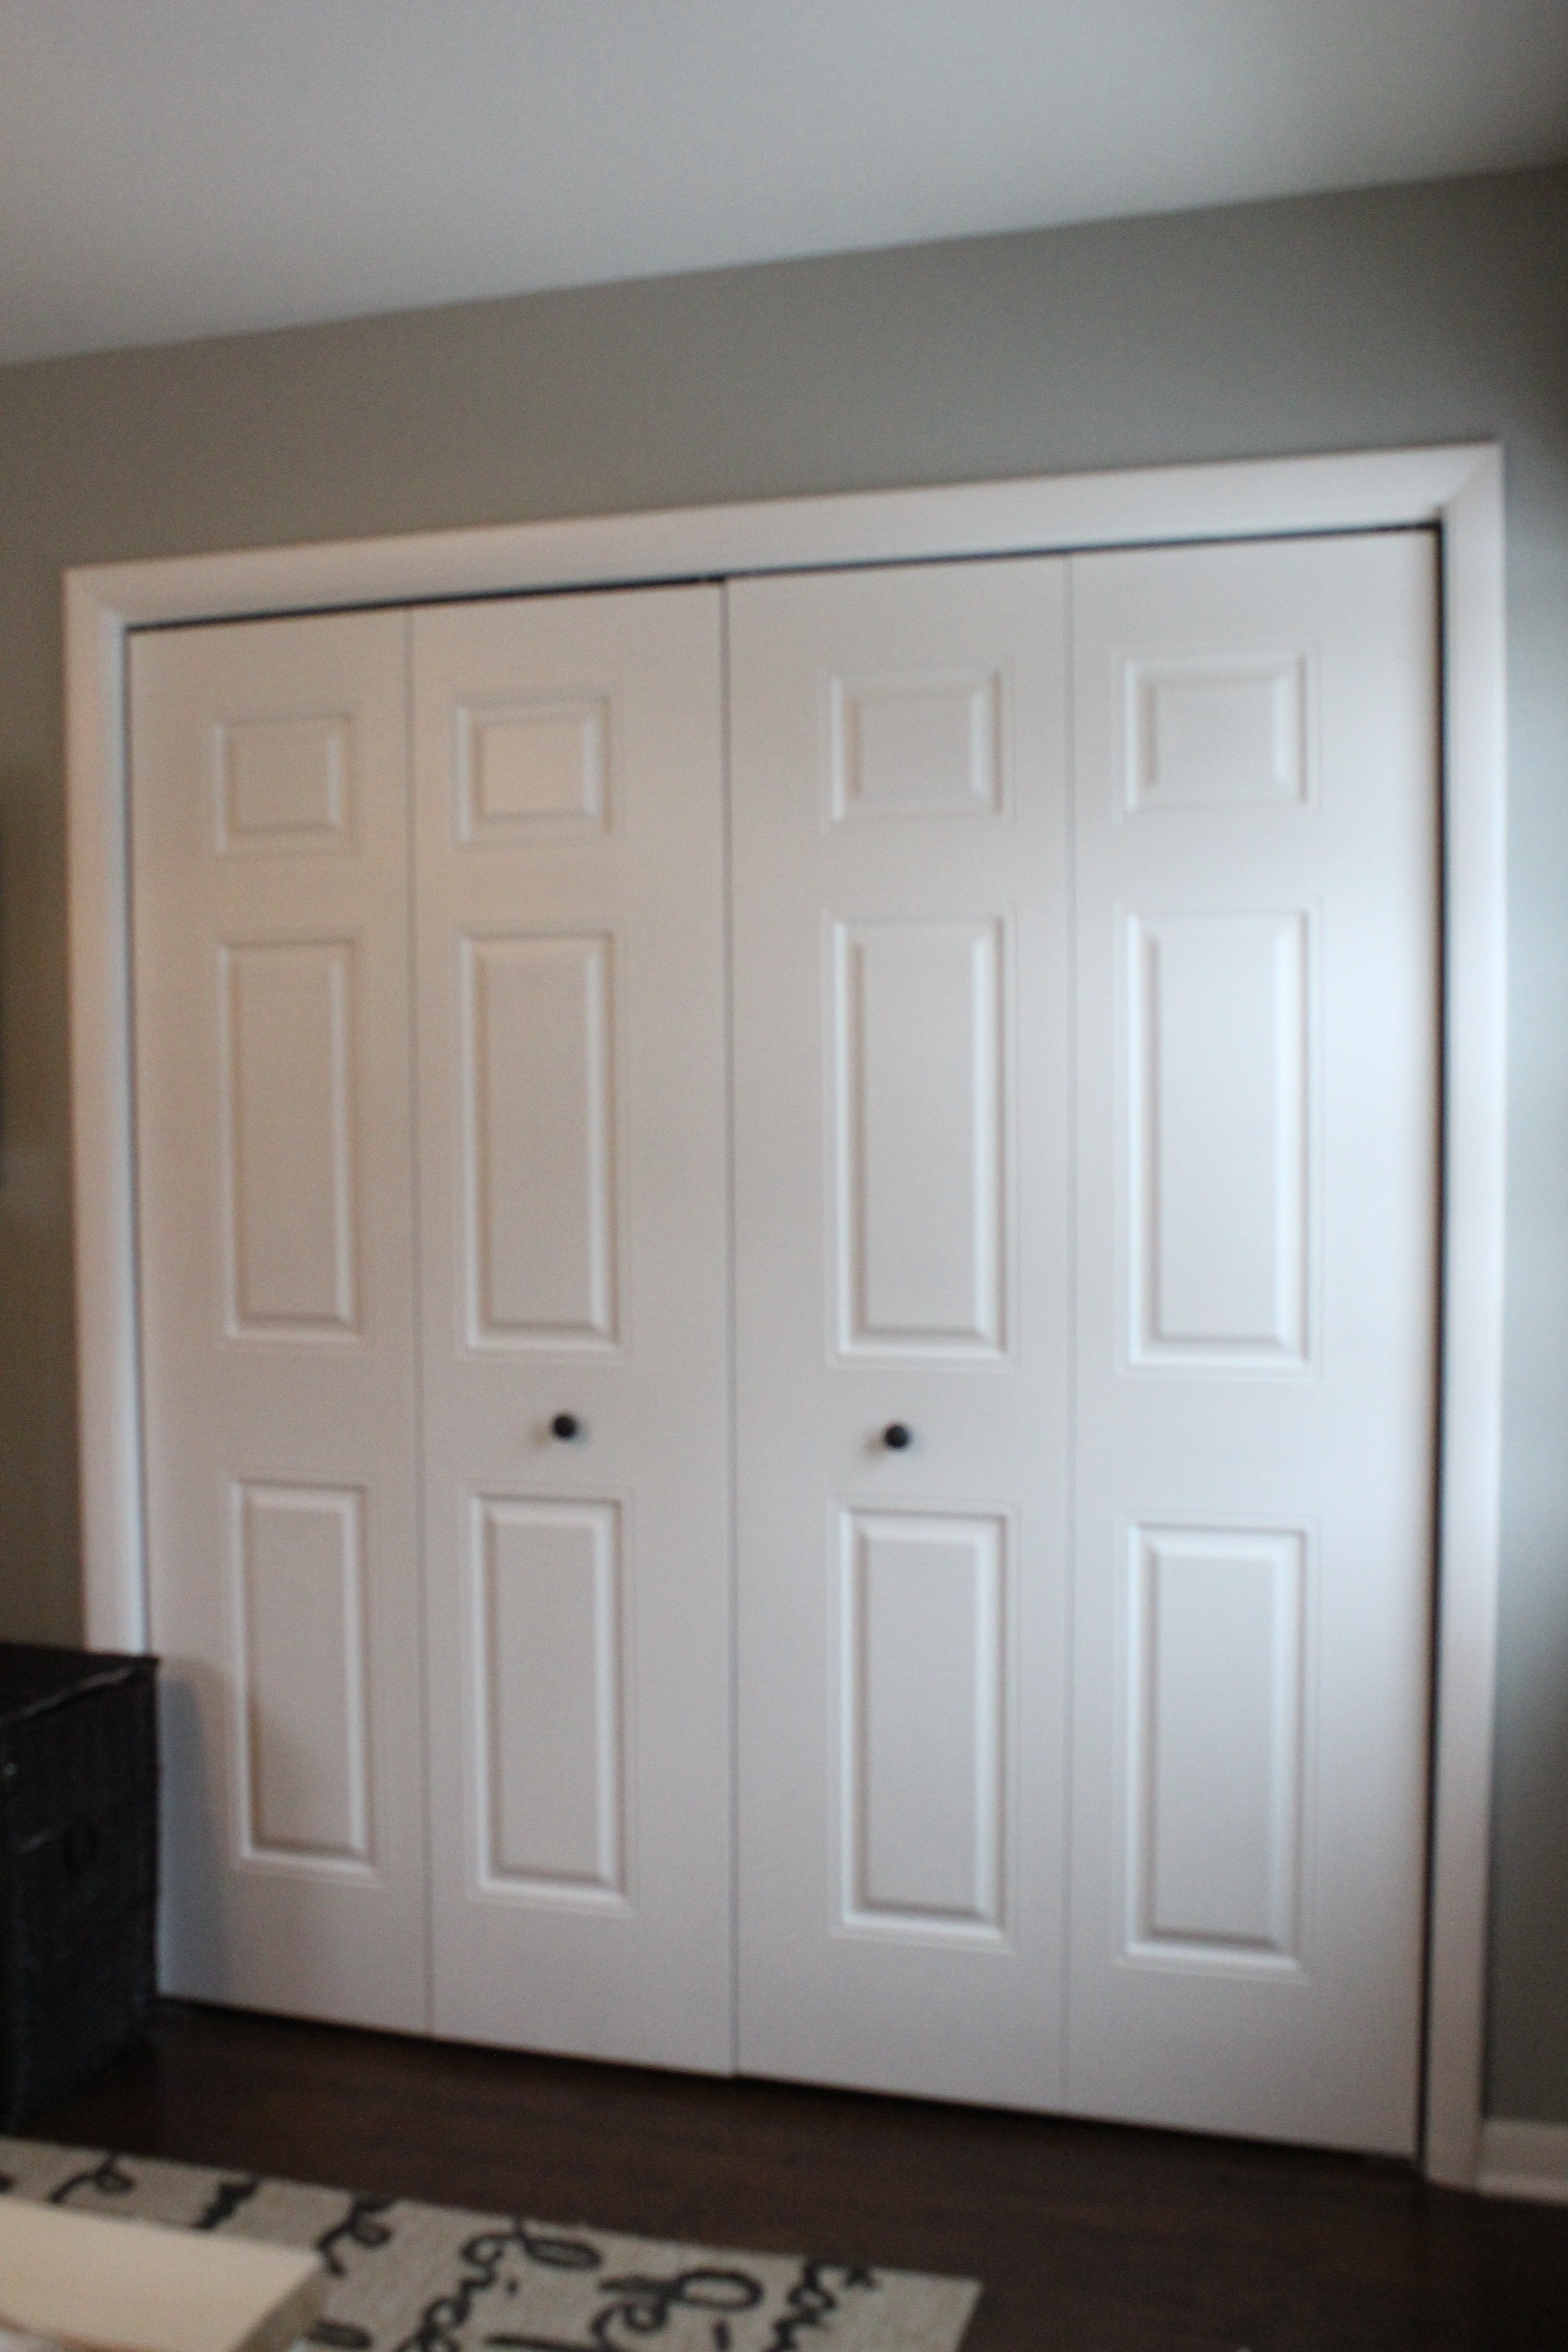 Winsome mirror bypass closet doors home depot for Sliding closet doors